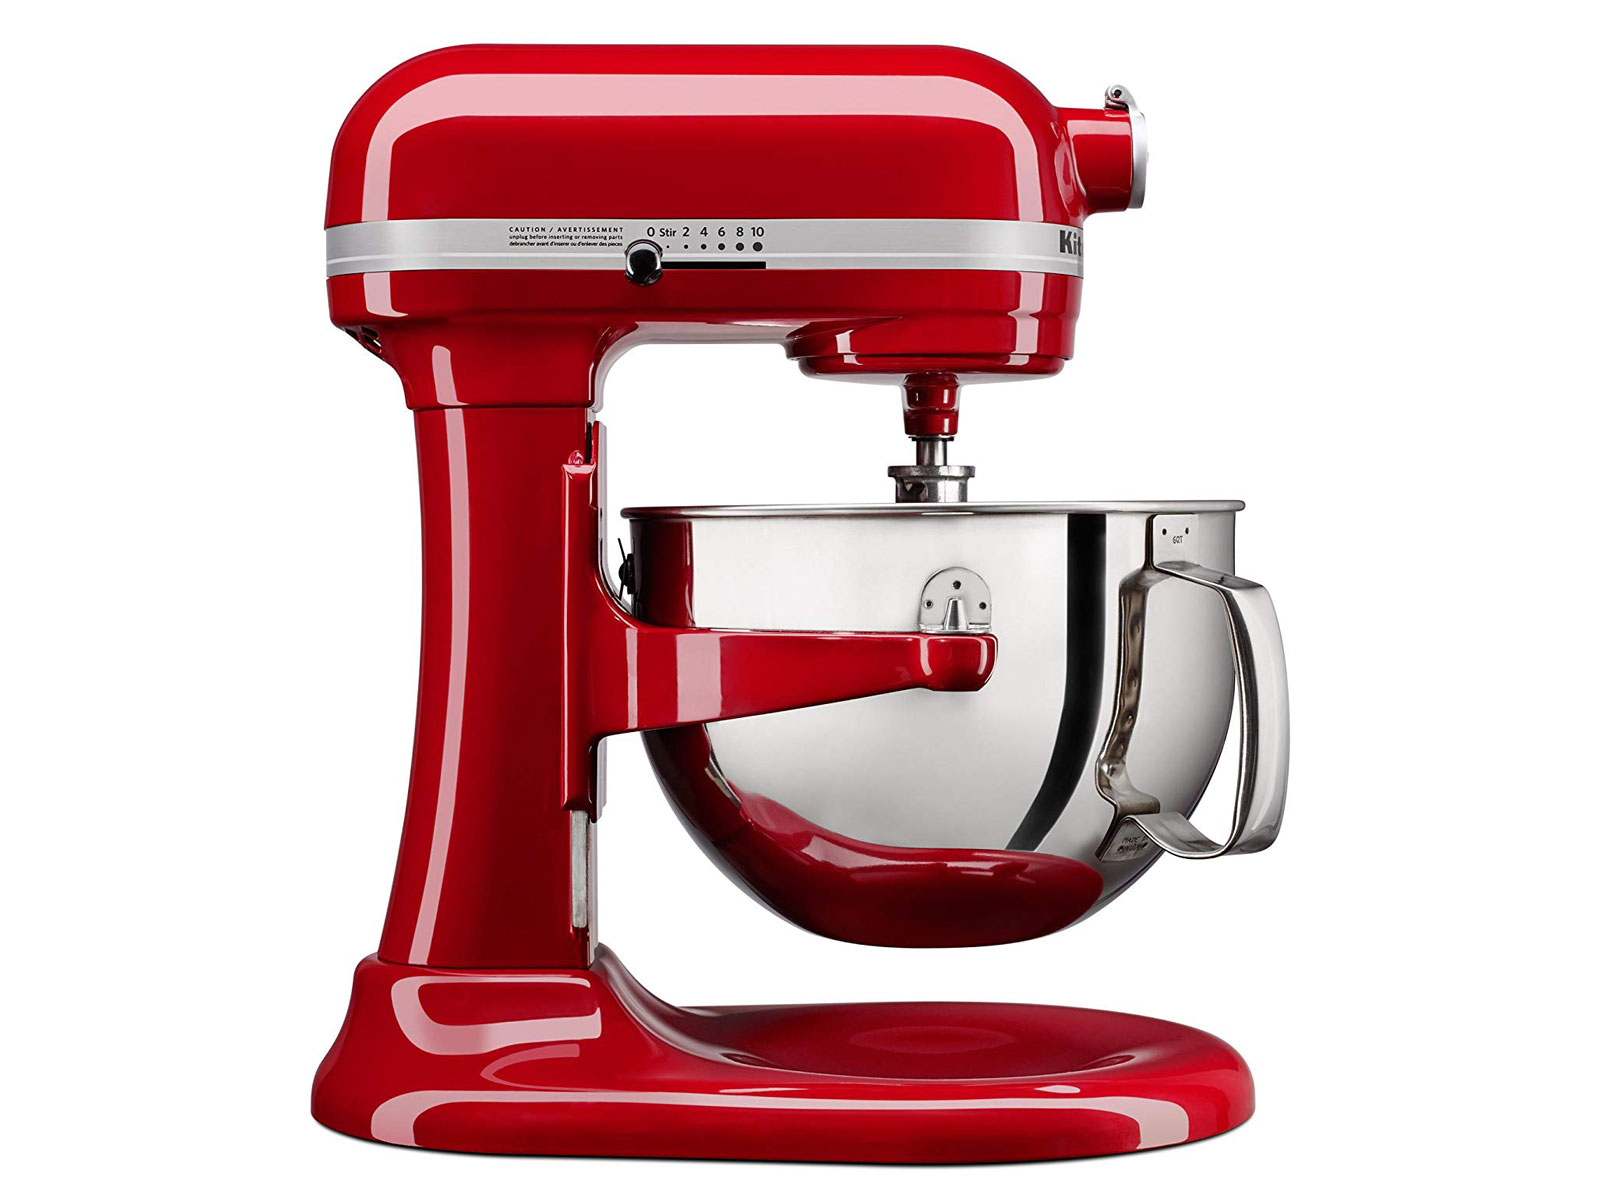 amazon launches black friday kitchenaid deals a month early. Black Bedroom Furniture Sets. Home Design Ideas